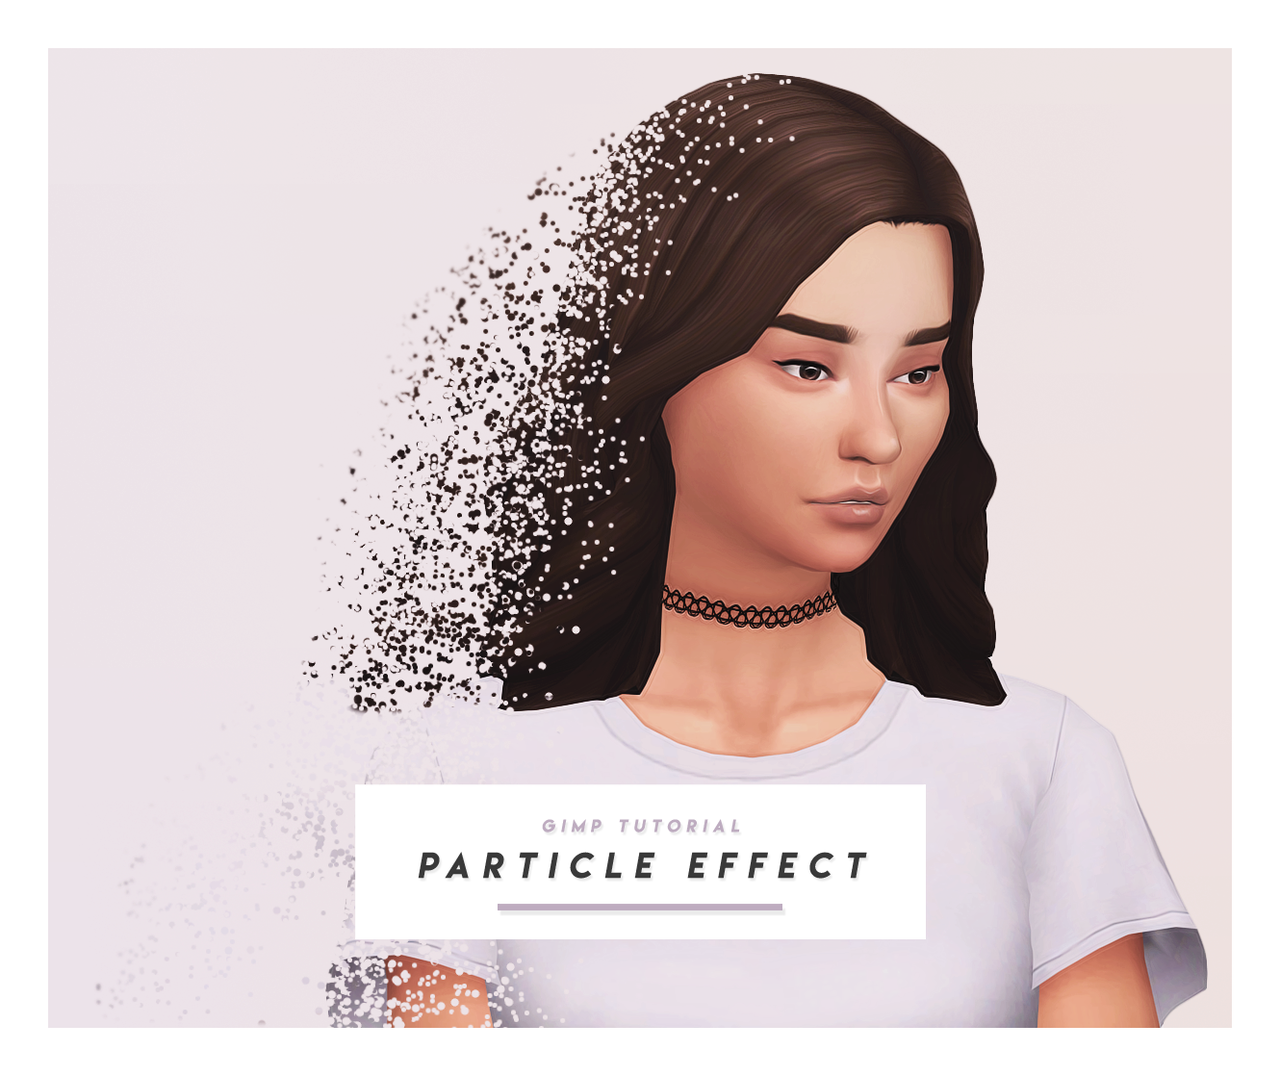 Particle Effect Gimp Tutorial This Is Was Requested Quite A Bit So I Finally Took Time To Sit Down And Write The Tutorial Y Gimp Tutorial Gimp Tutorial